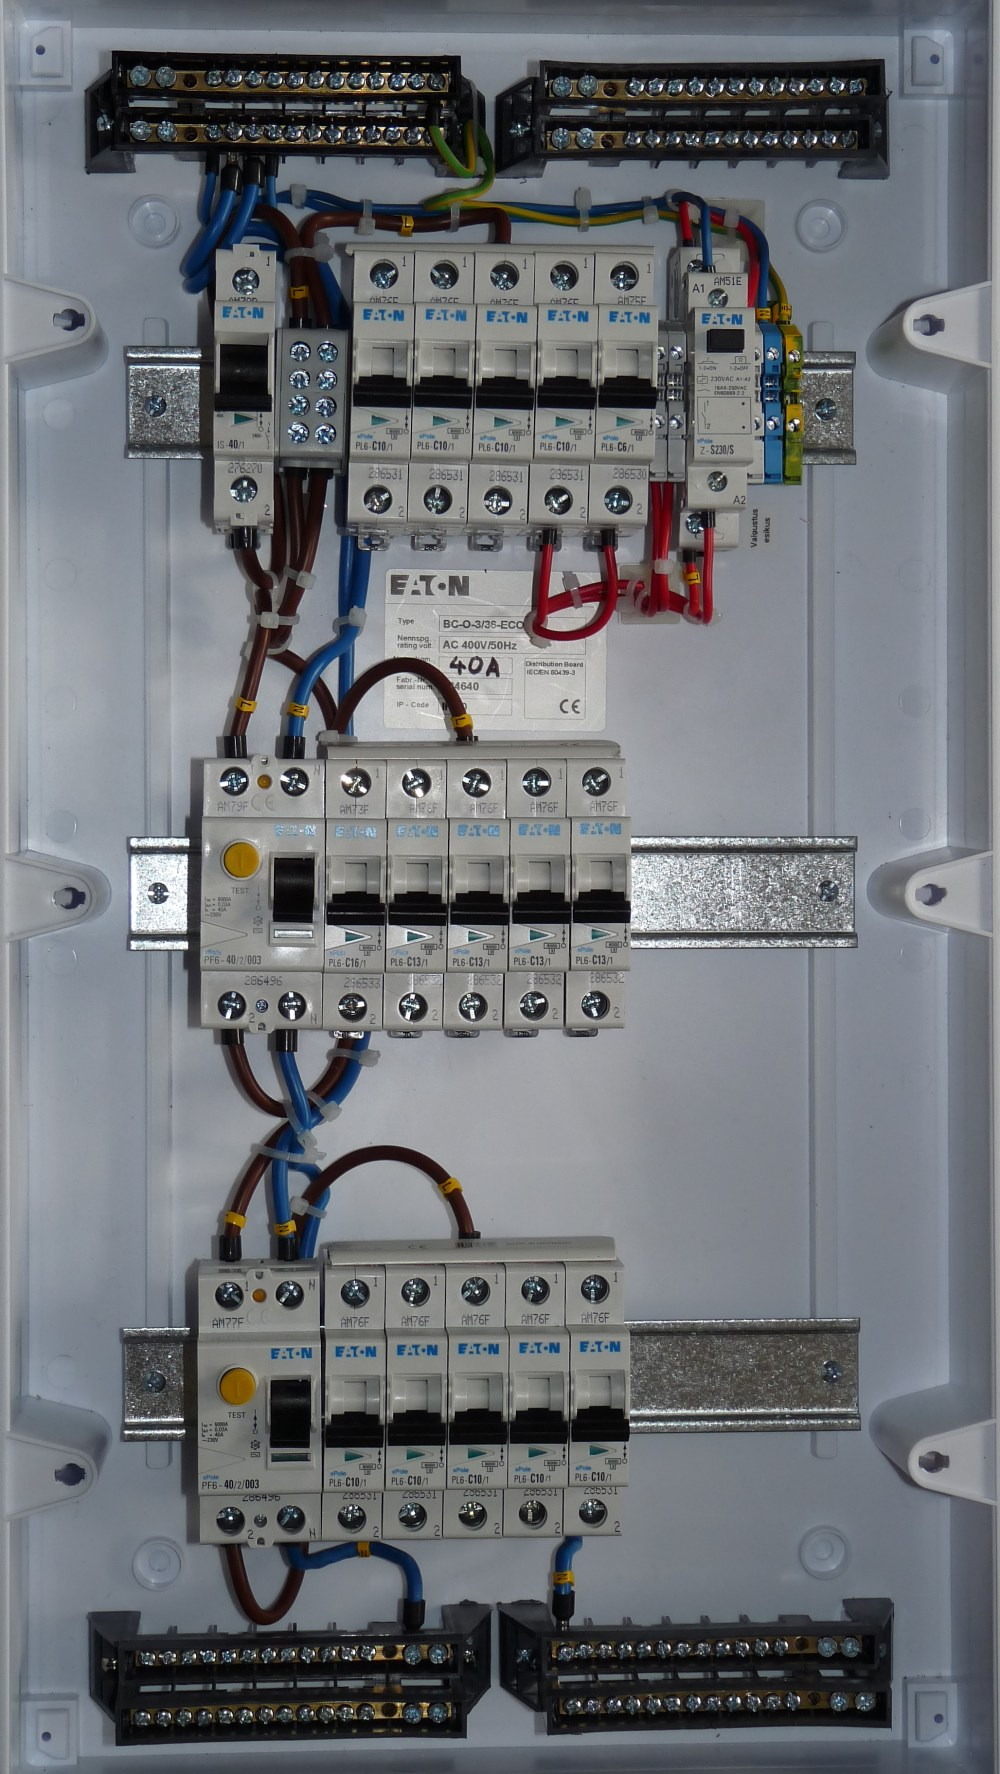 medium resolution of file gonsiori 3 apartment fuse box jpg wikimedia commons old fuse box wiring apartment fuse box